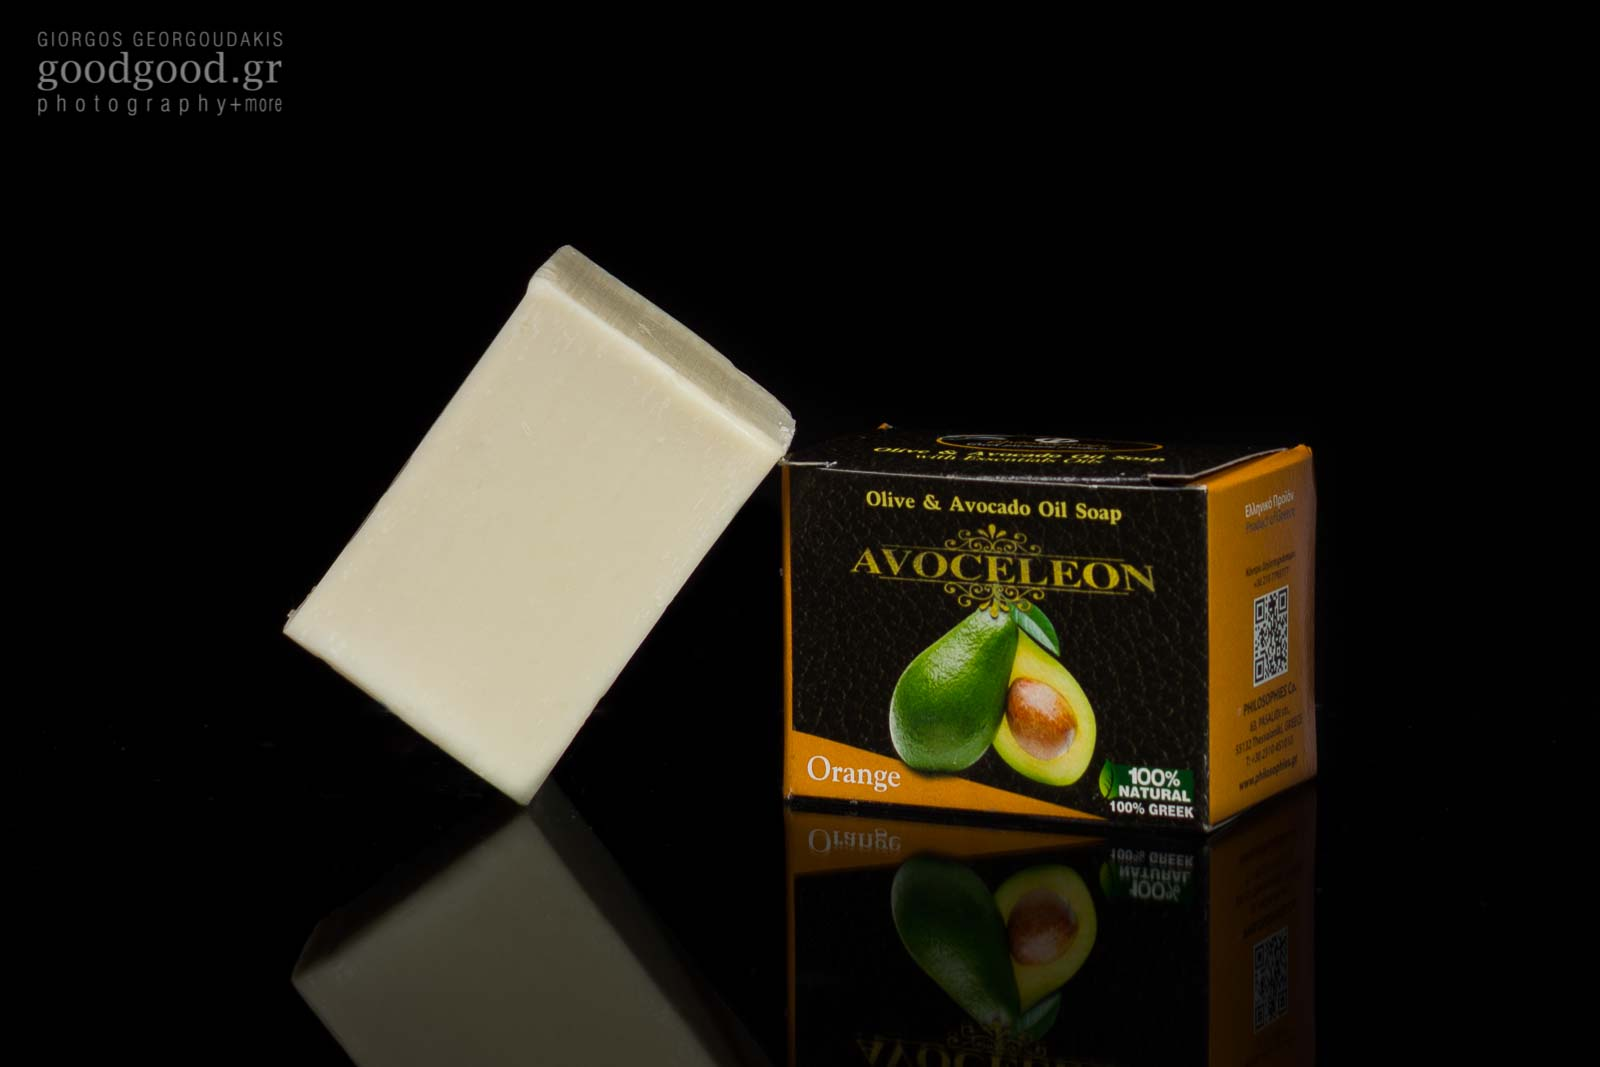 Product photograph of a bar of soap made of olive and avocado oil in dark background